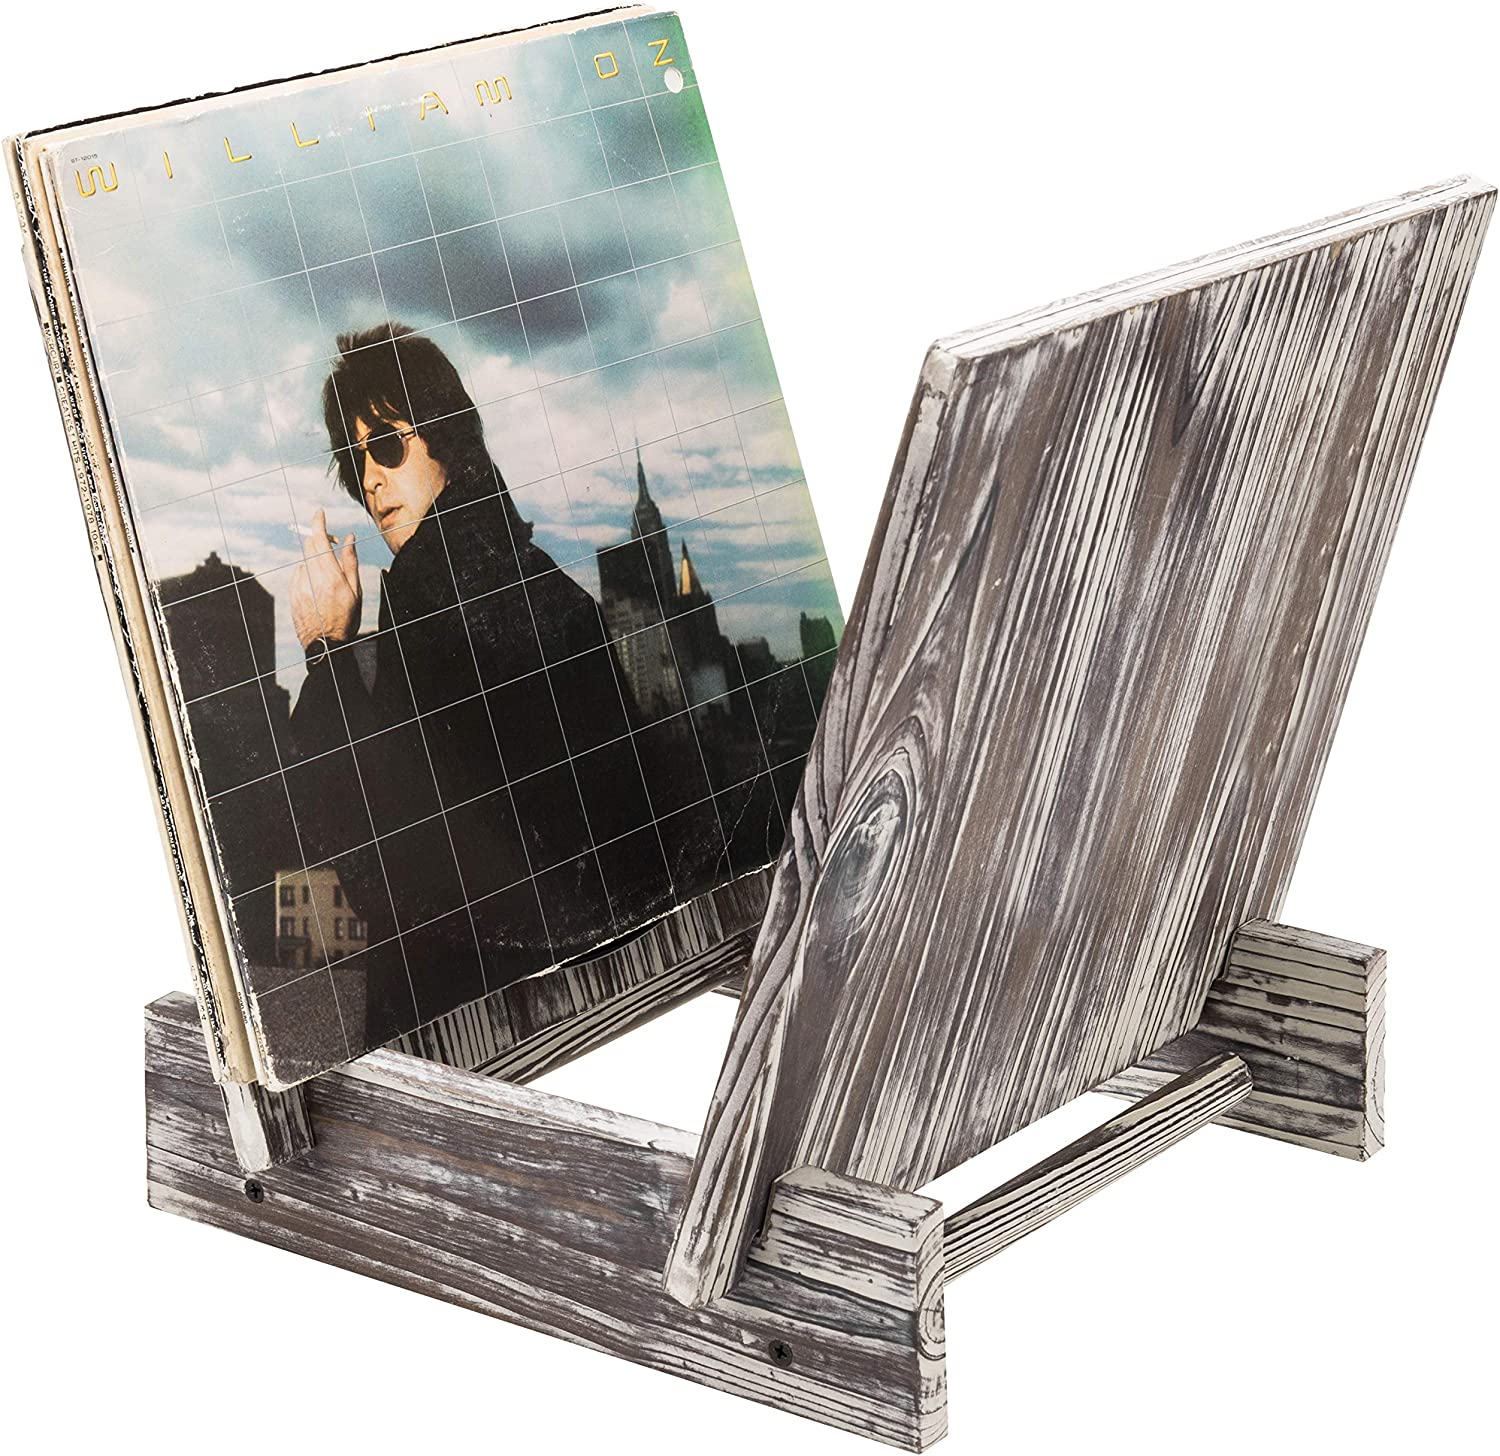 MyGift Rustic Max 40% OFF Torched Wood Year-end gift Vinyl Record Media Display Stand